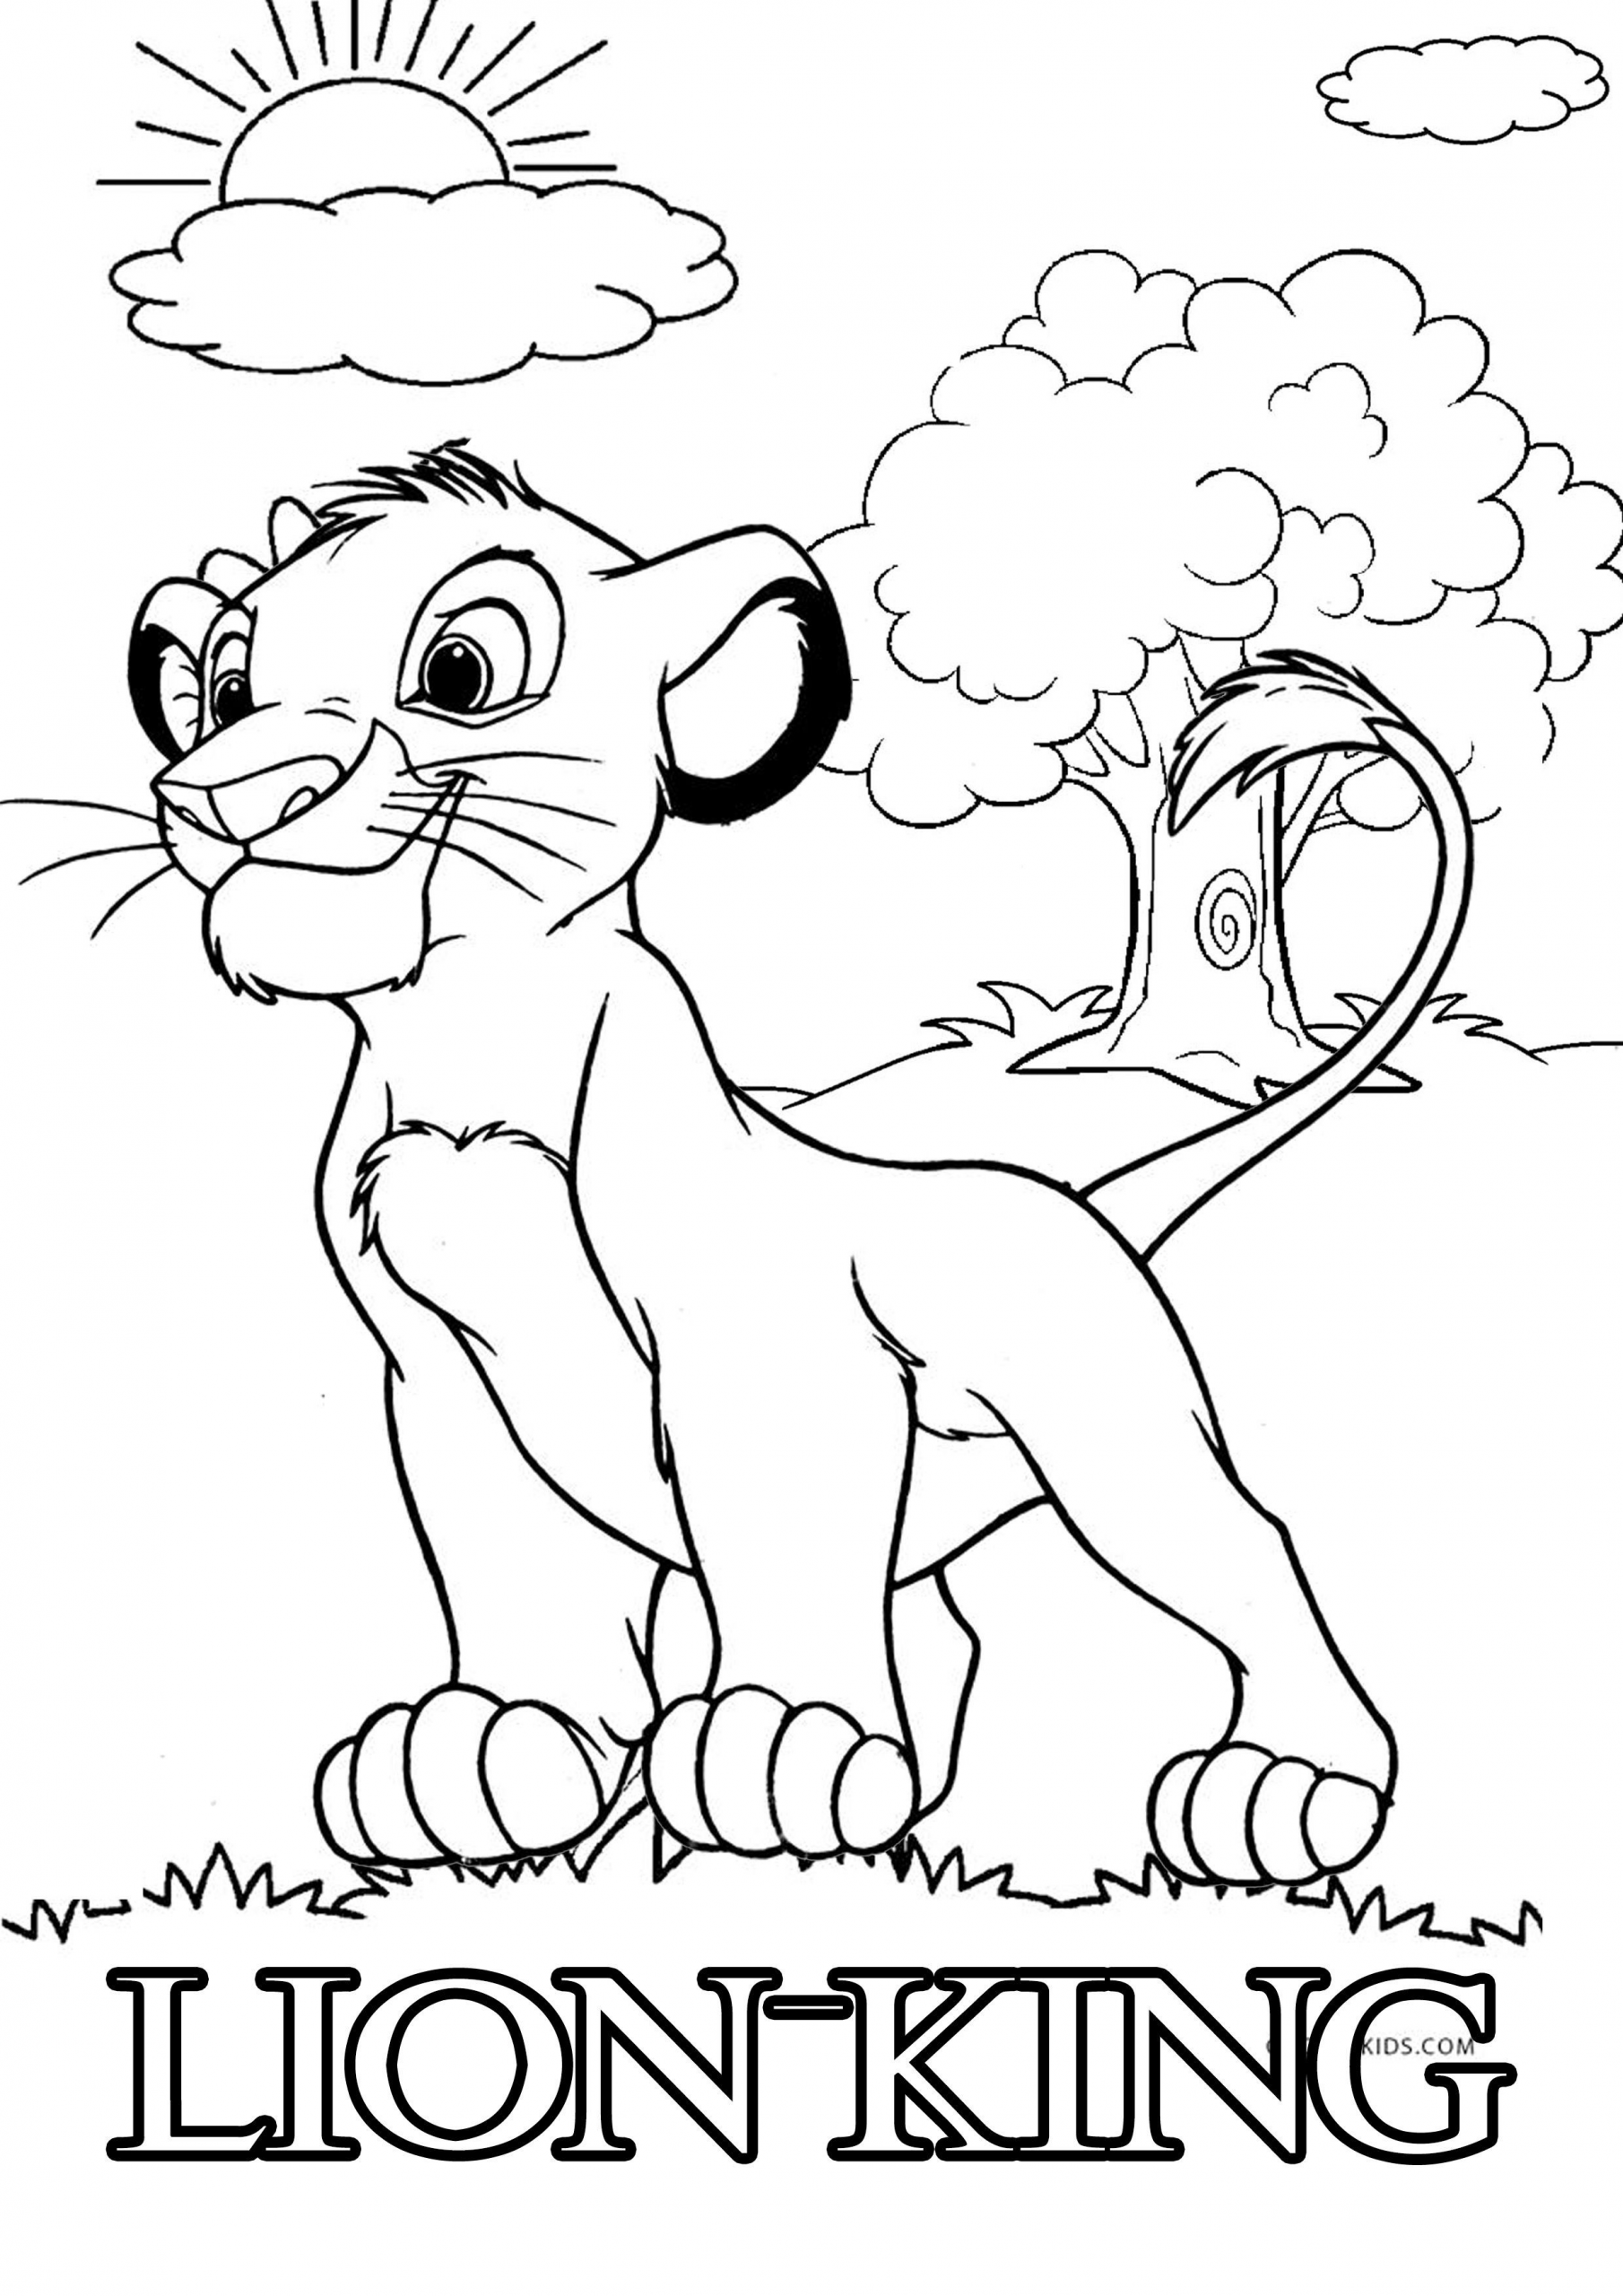 Coloring Page Lion King Youngandtae Com In 2020 Lion Coloring Pages Cartoon Lion Coloring Books